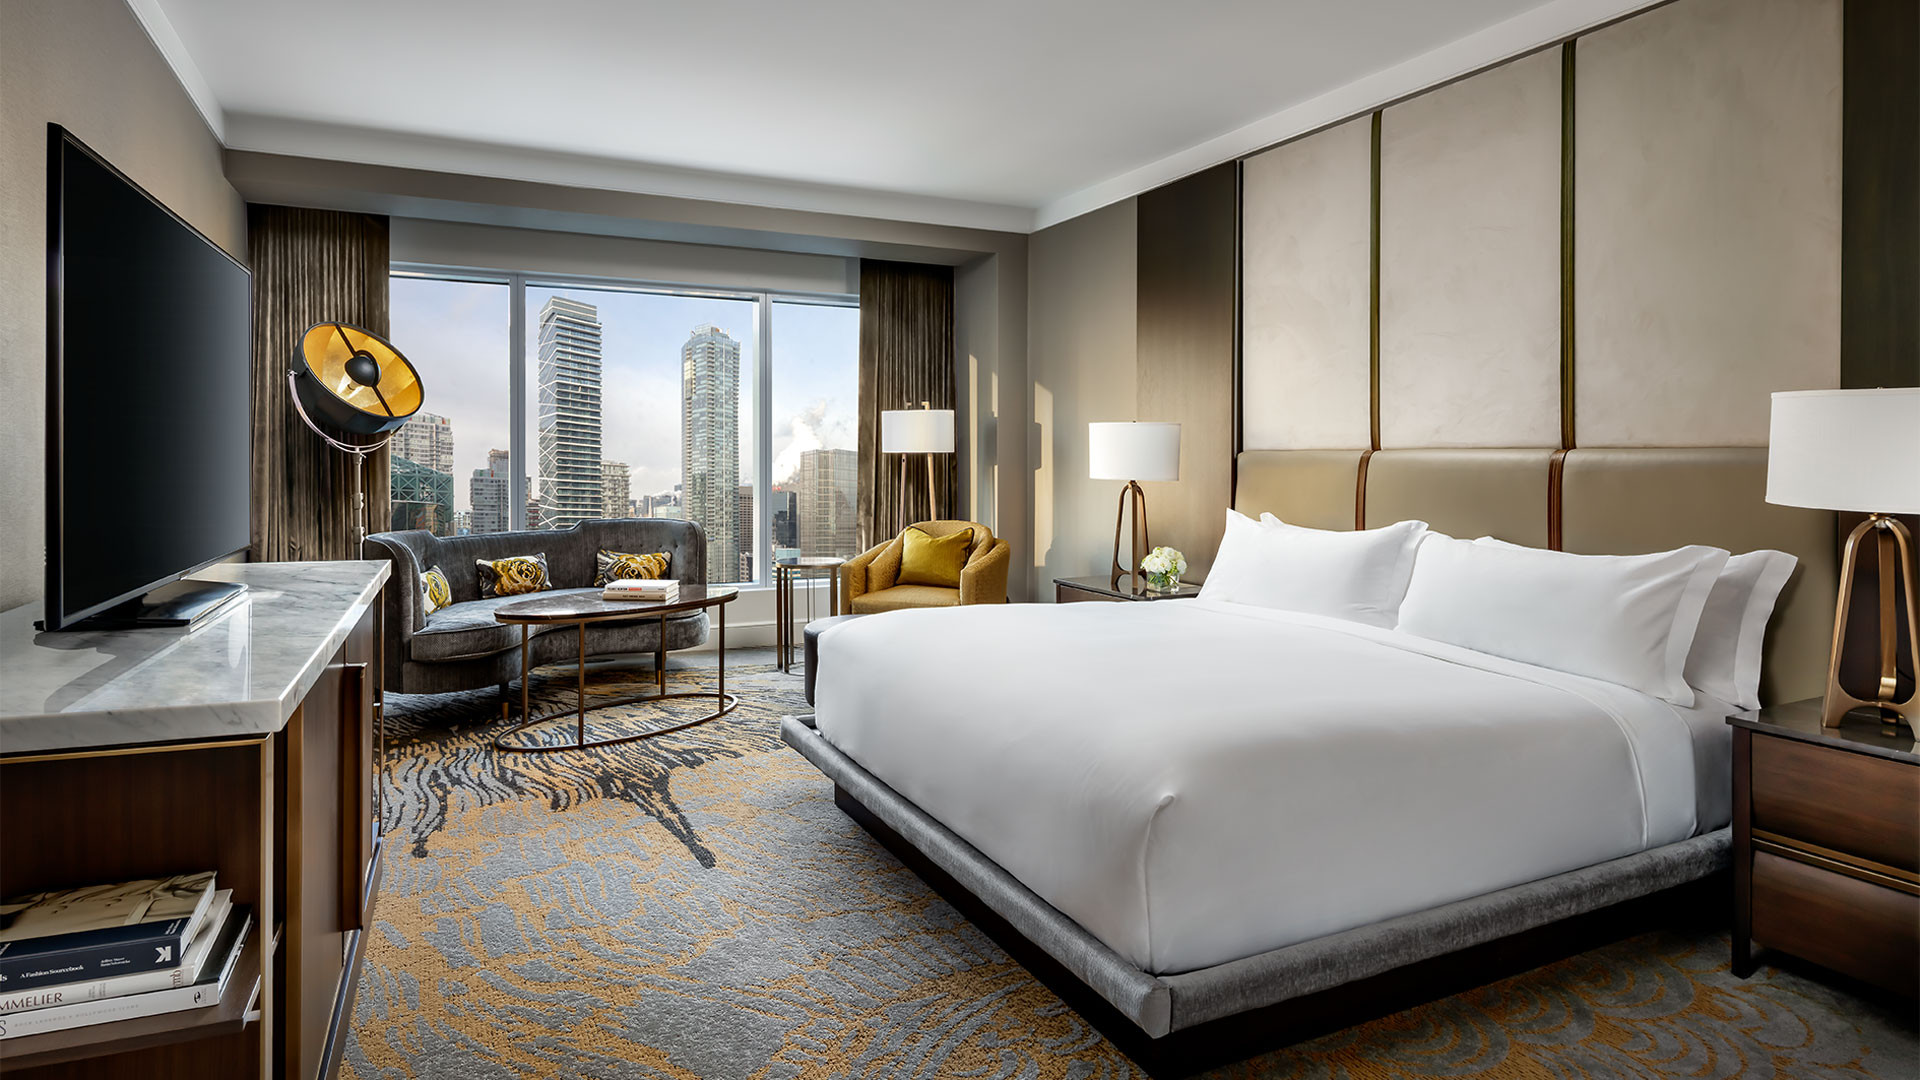 The Ritz-Carlton Hotel Toronto | Bedroom suite overlooking downtown Toronto